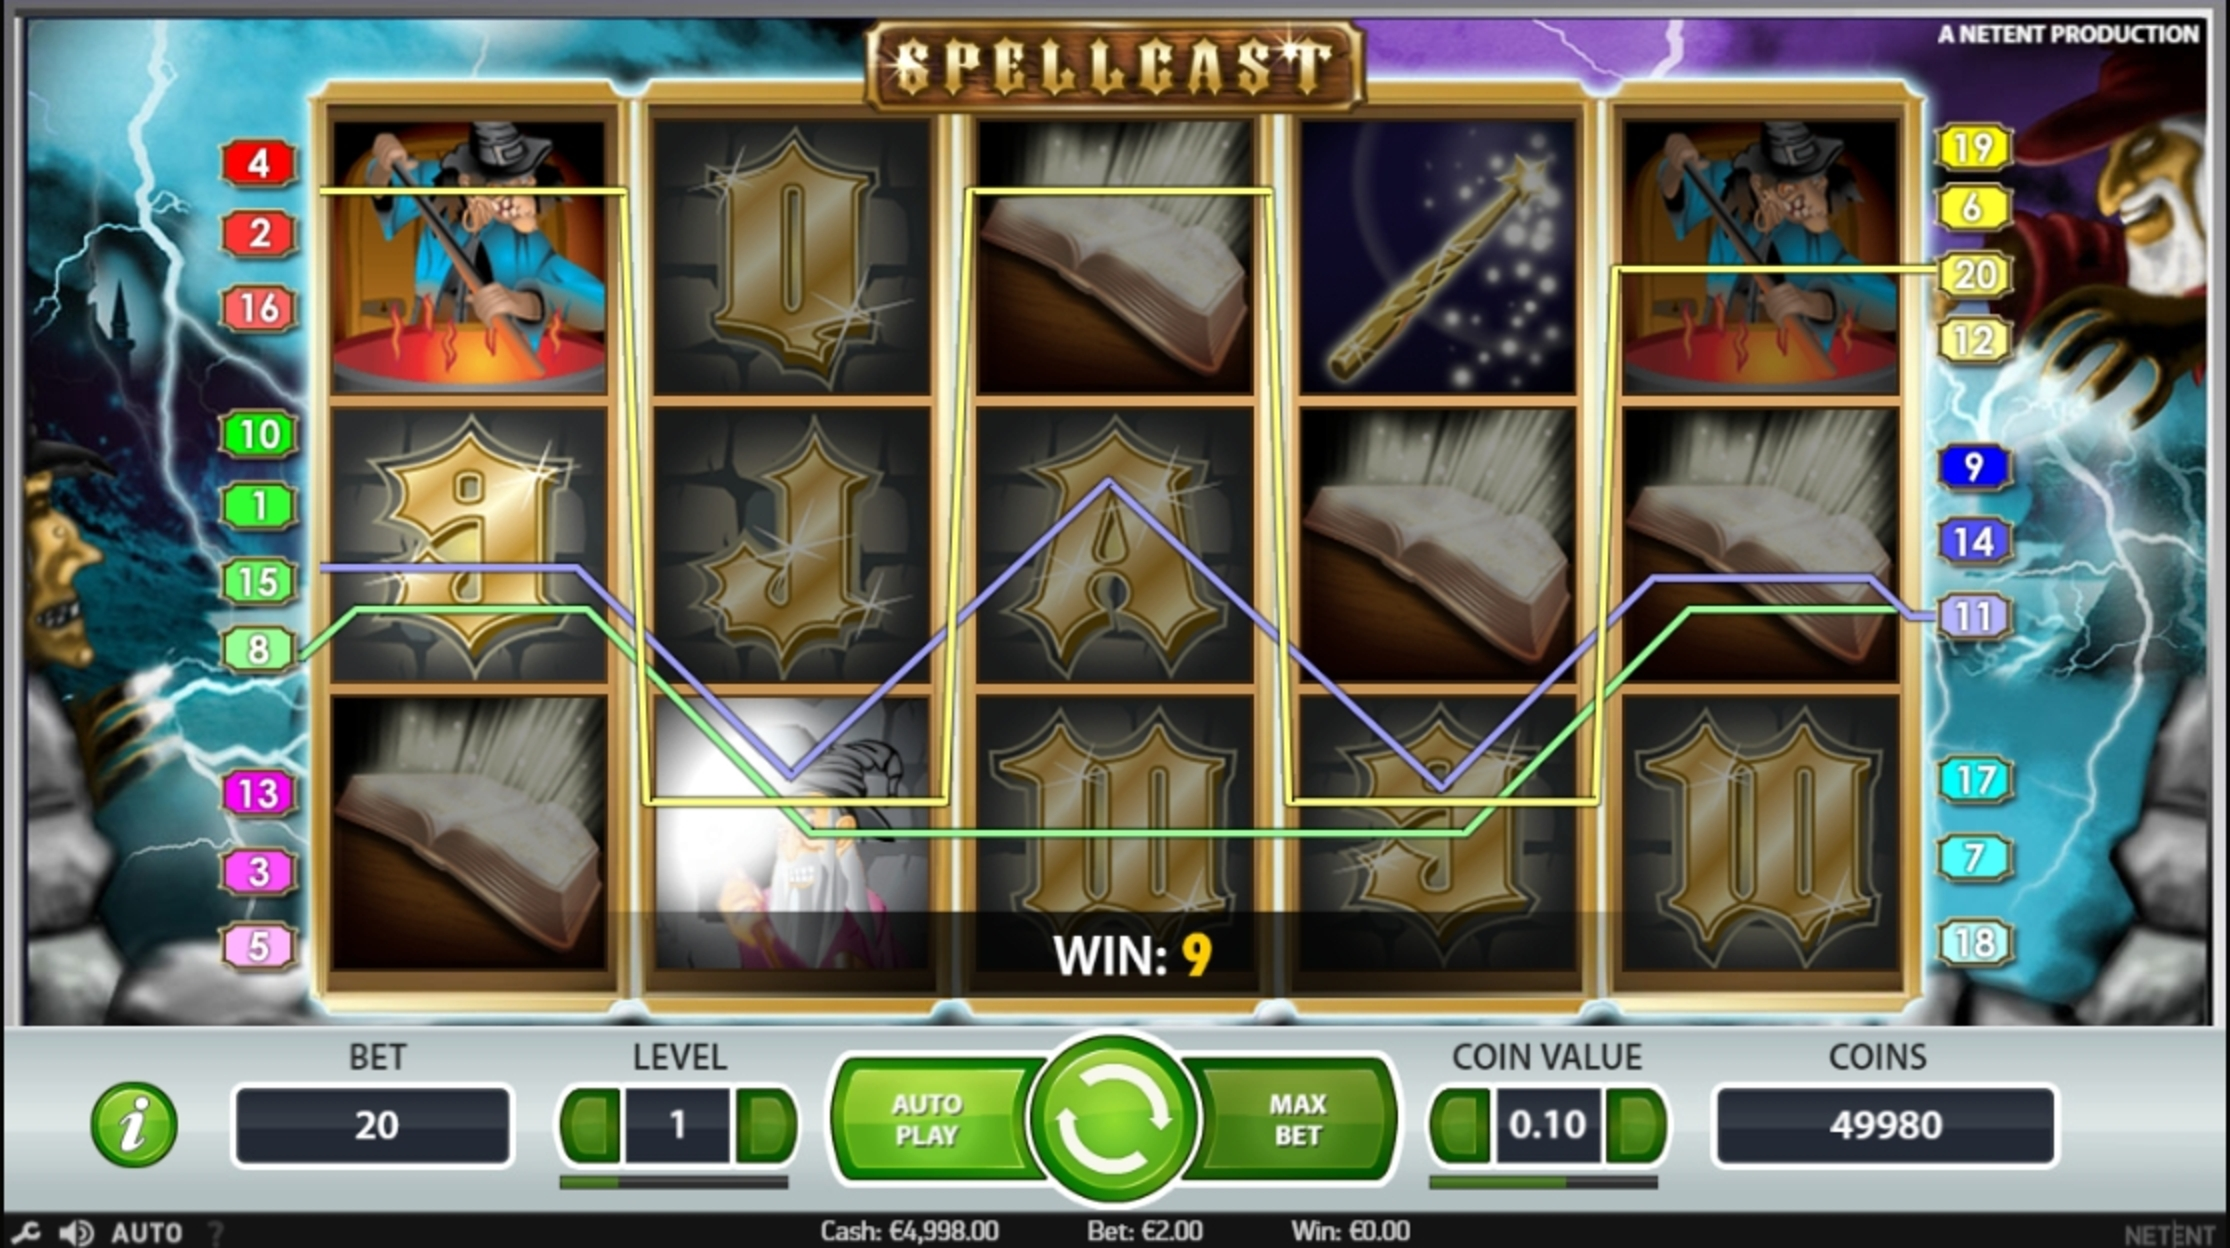 Win Money in Spellcast Free Slot Game by NetEnt